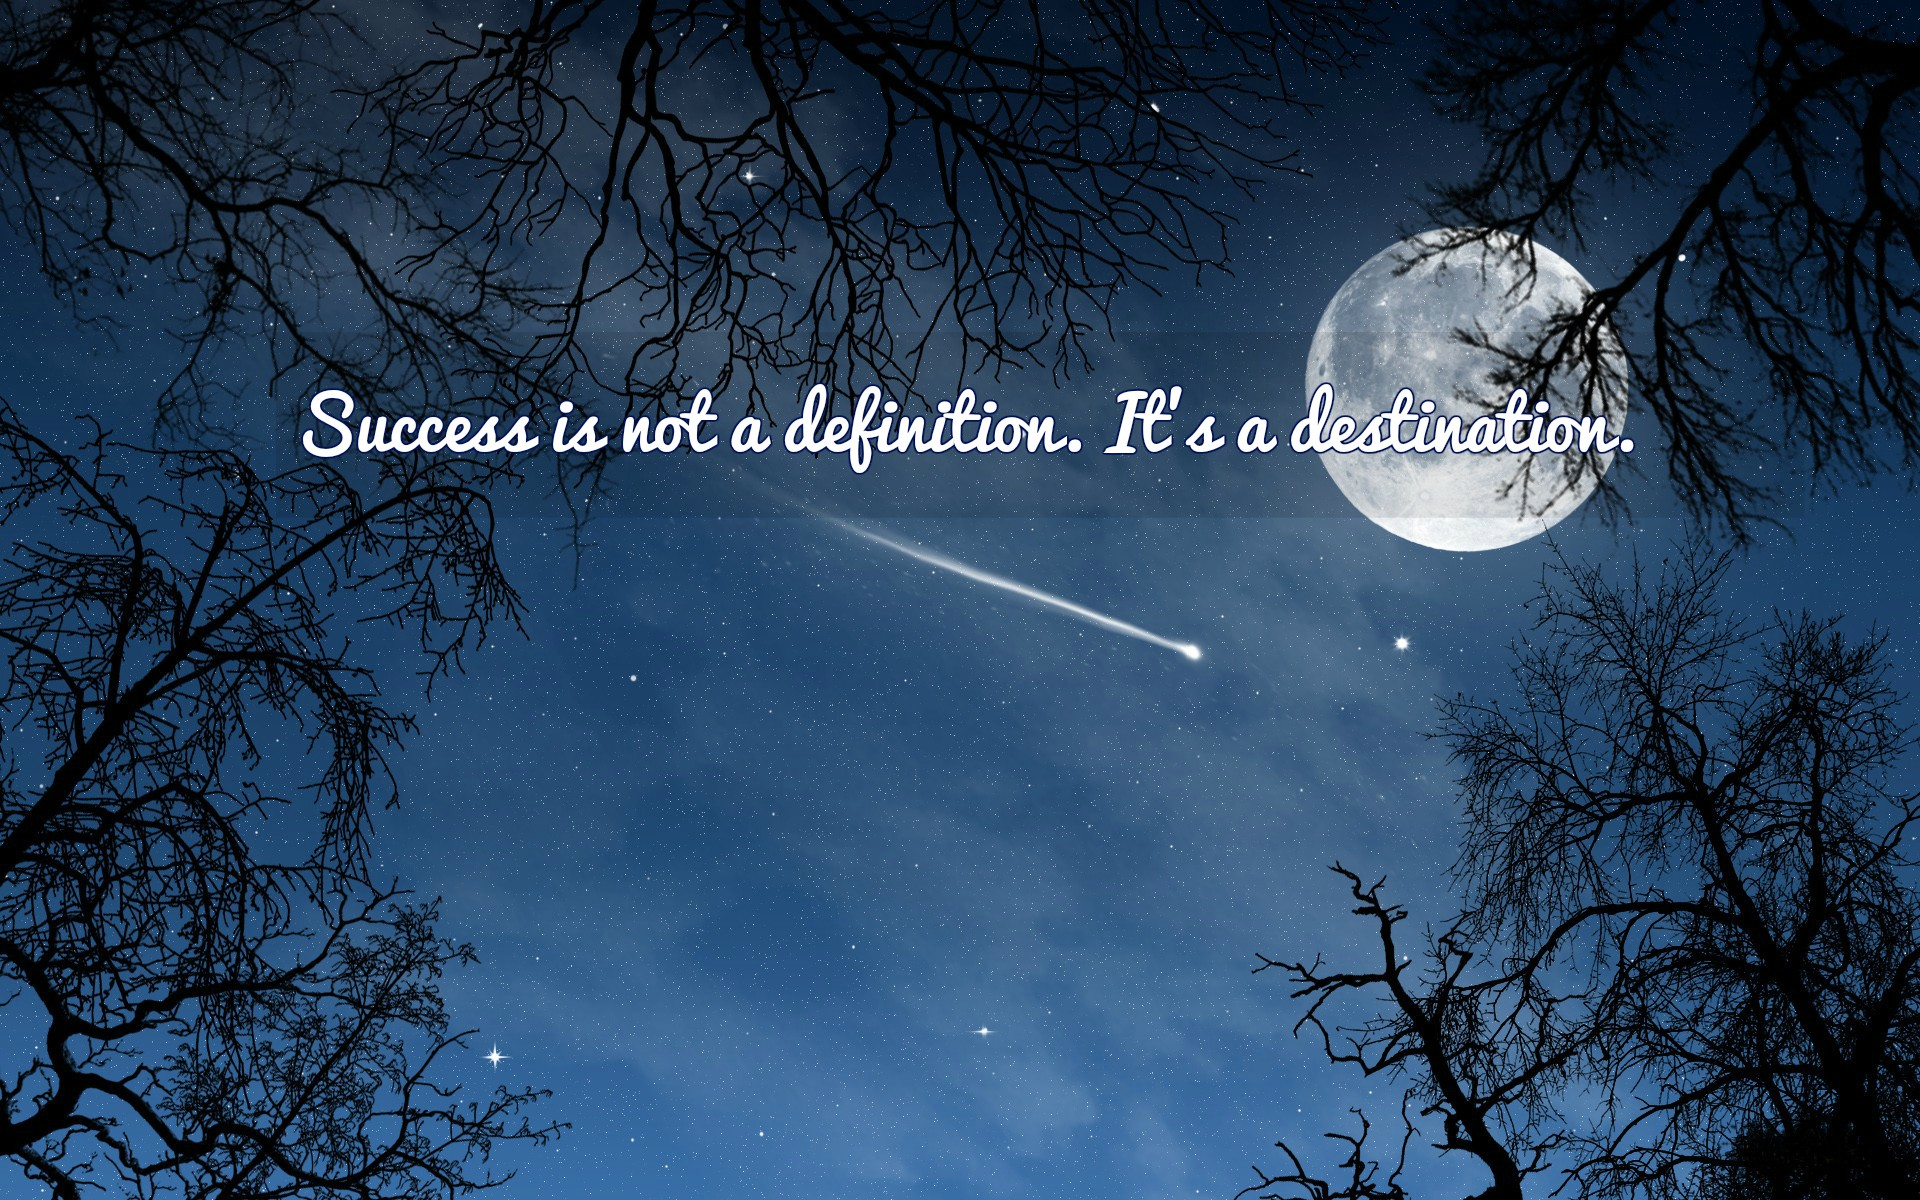 [Image] There is no definition of success